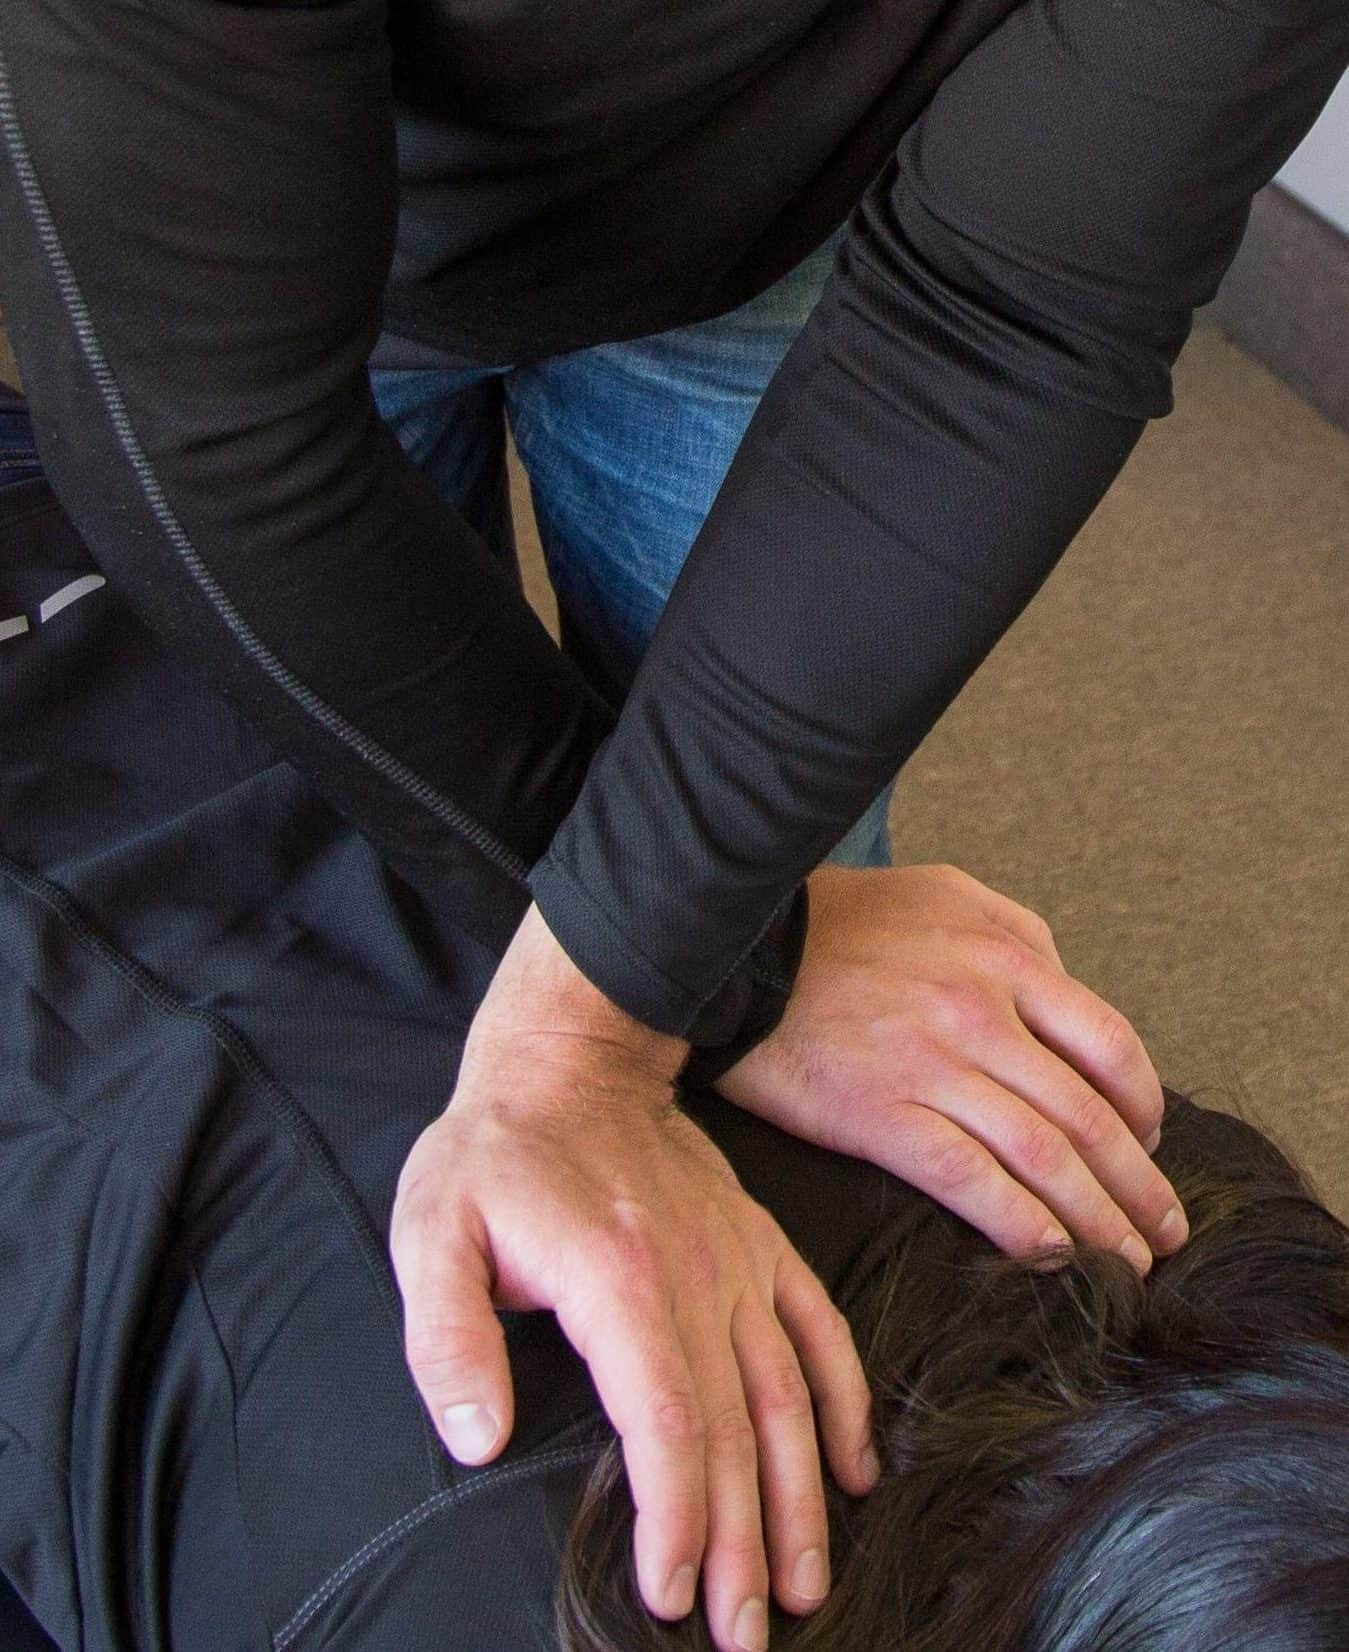 Get Started at ChiroWay